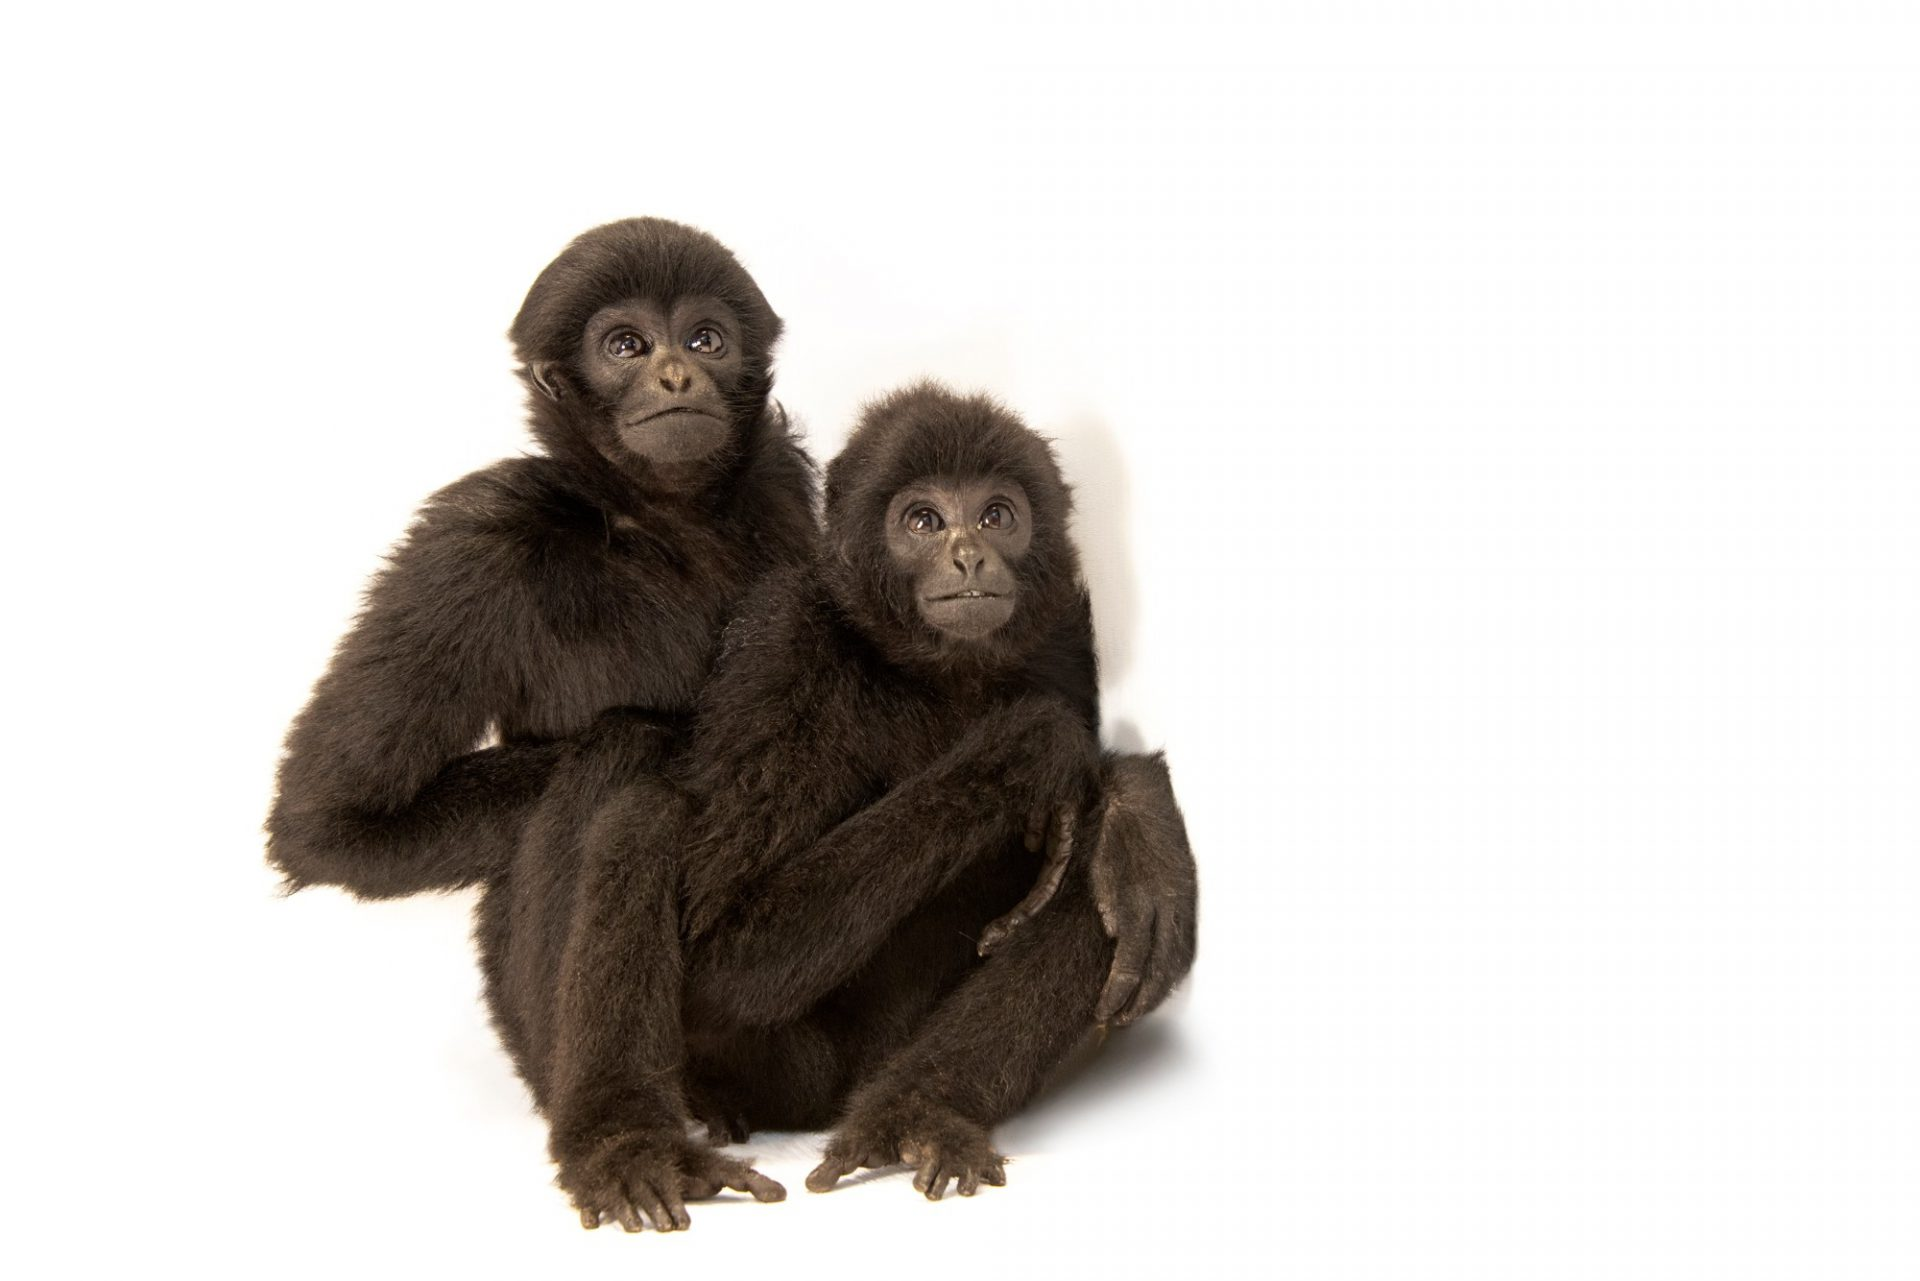 Photo: Two endangered Kloss's gibbons (Hylobates klossii) at Taman Safari in Bogor, West Java, Indonesia.